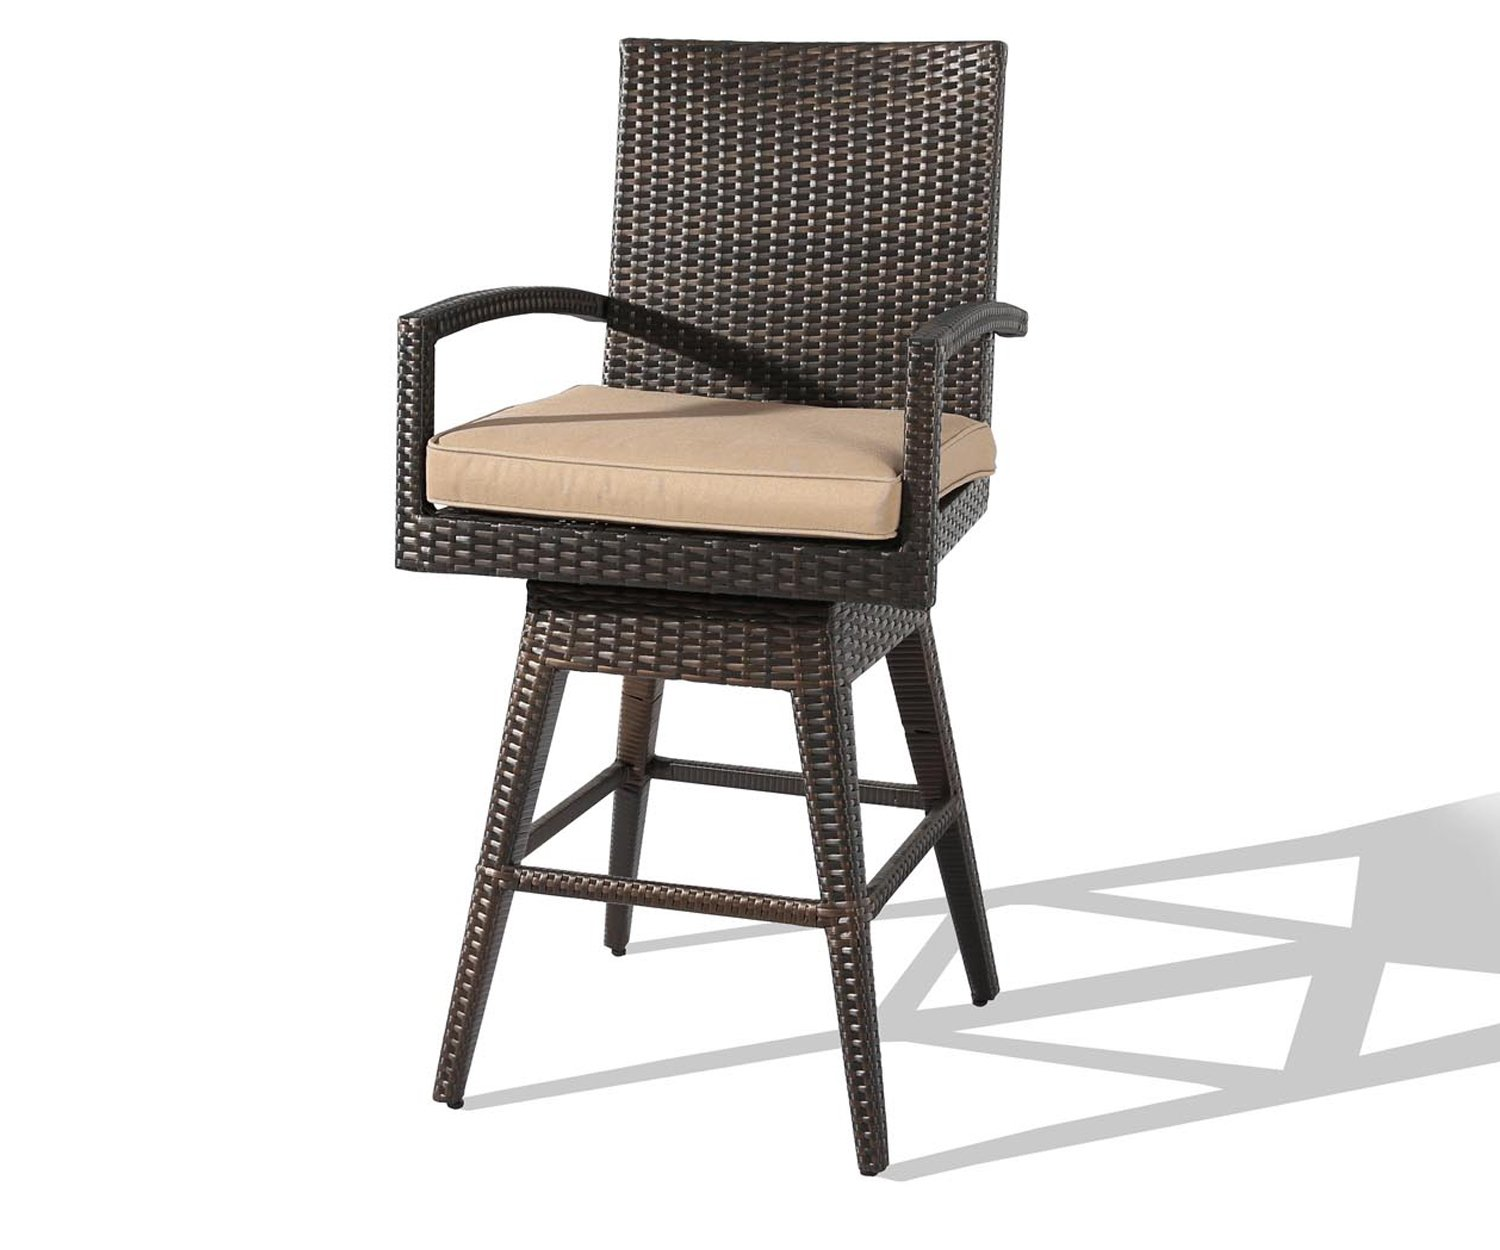 Ulax furniture Outdoor Patio Furniture All-Weather Brown Wicker Swivel Bar Stool with Cushion by Ulax furniture